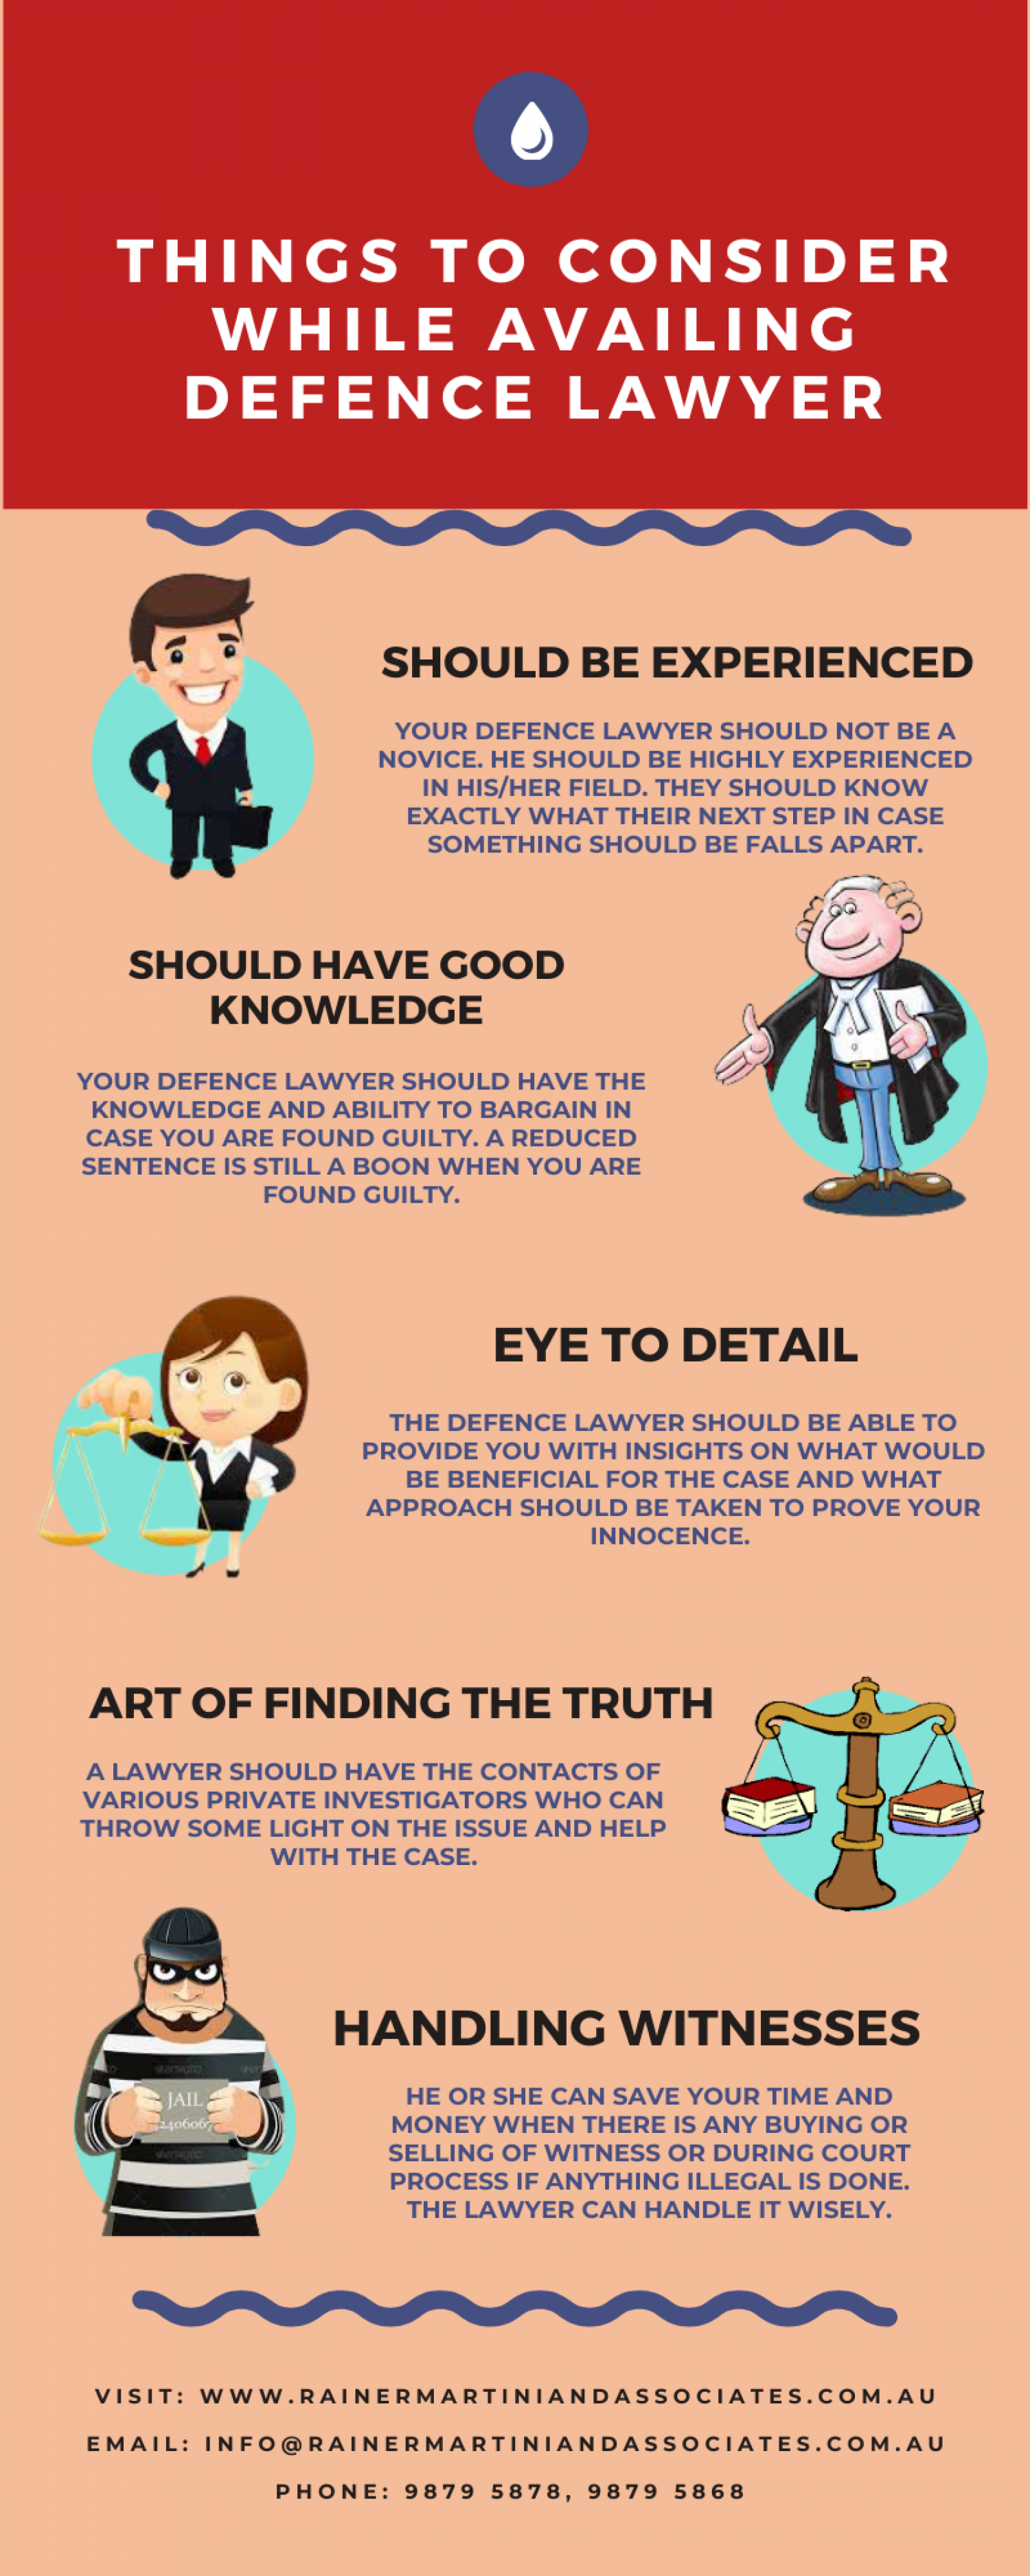 Things to Consider While Availing Defence Lawyer Infographic